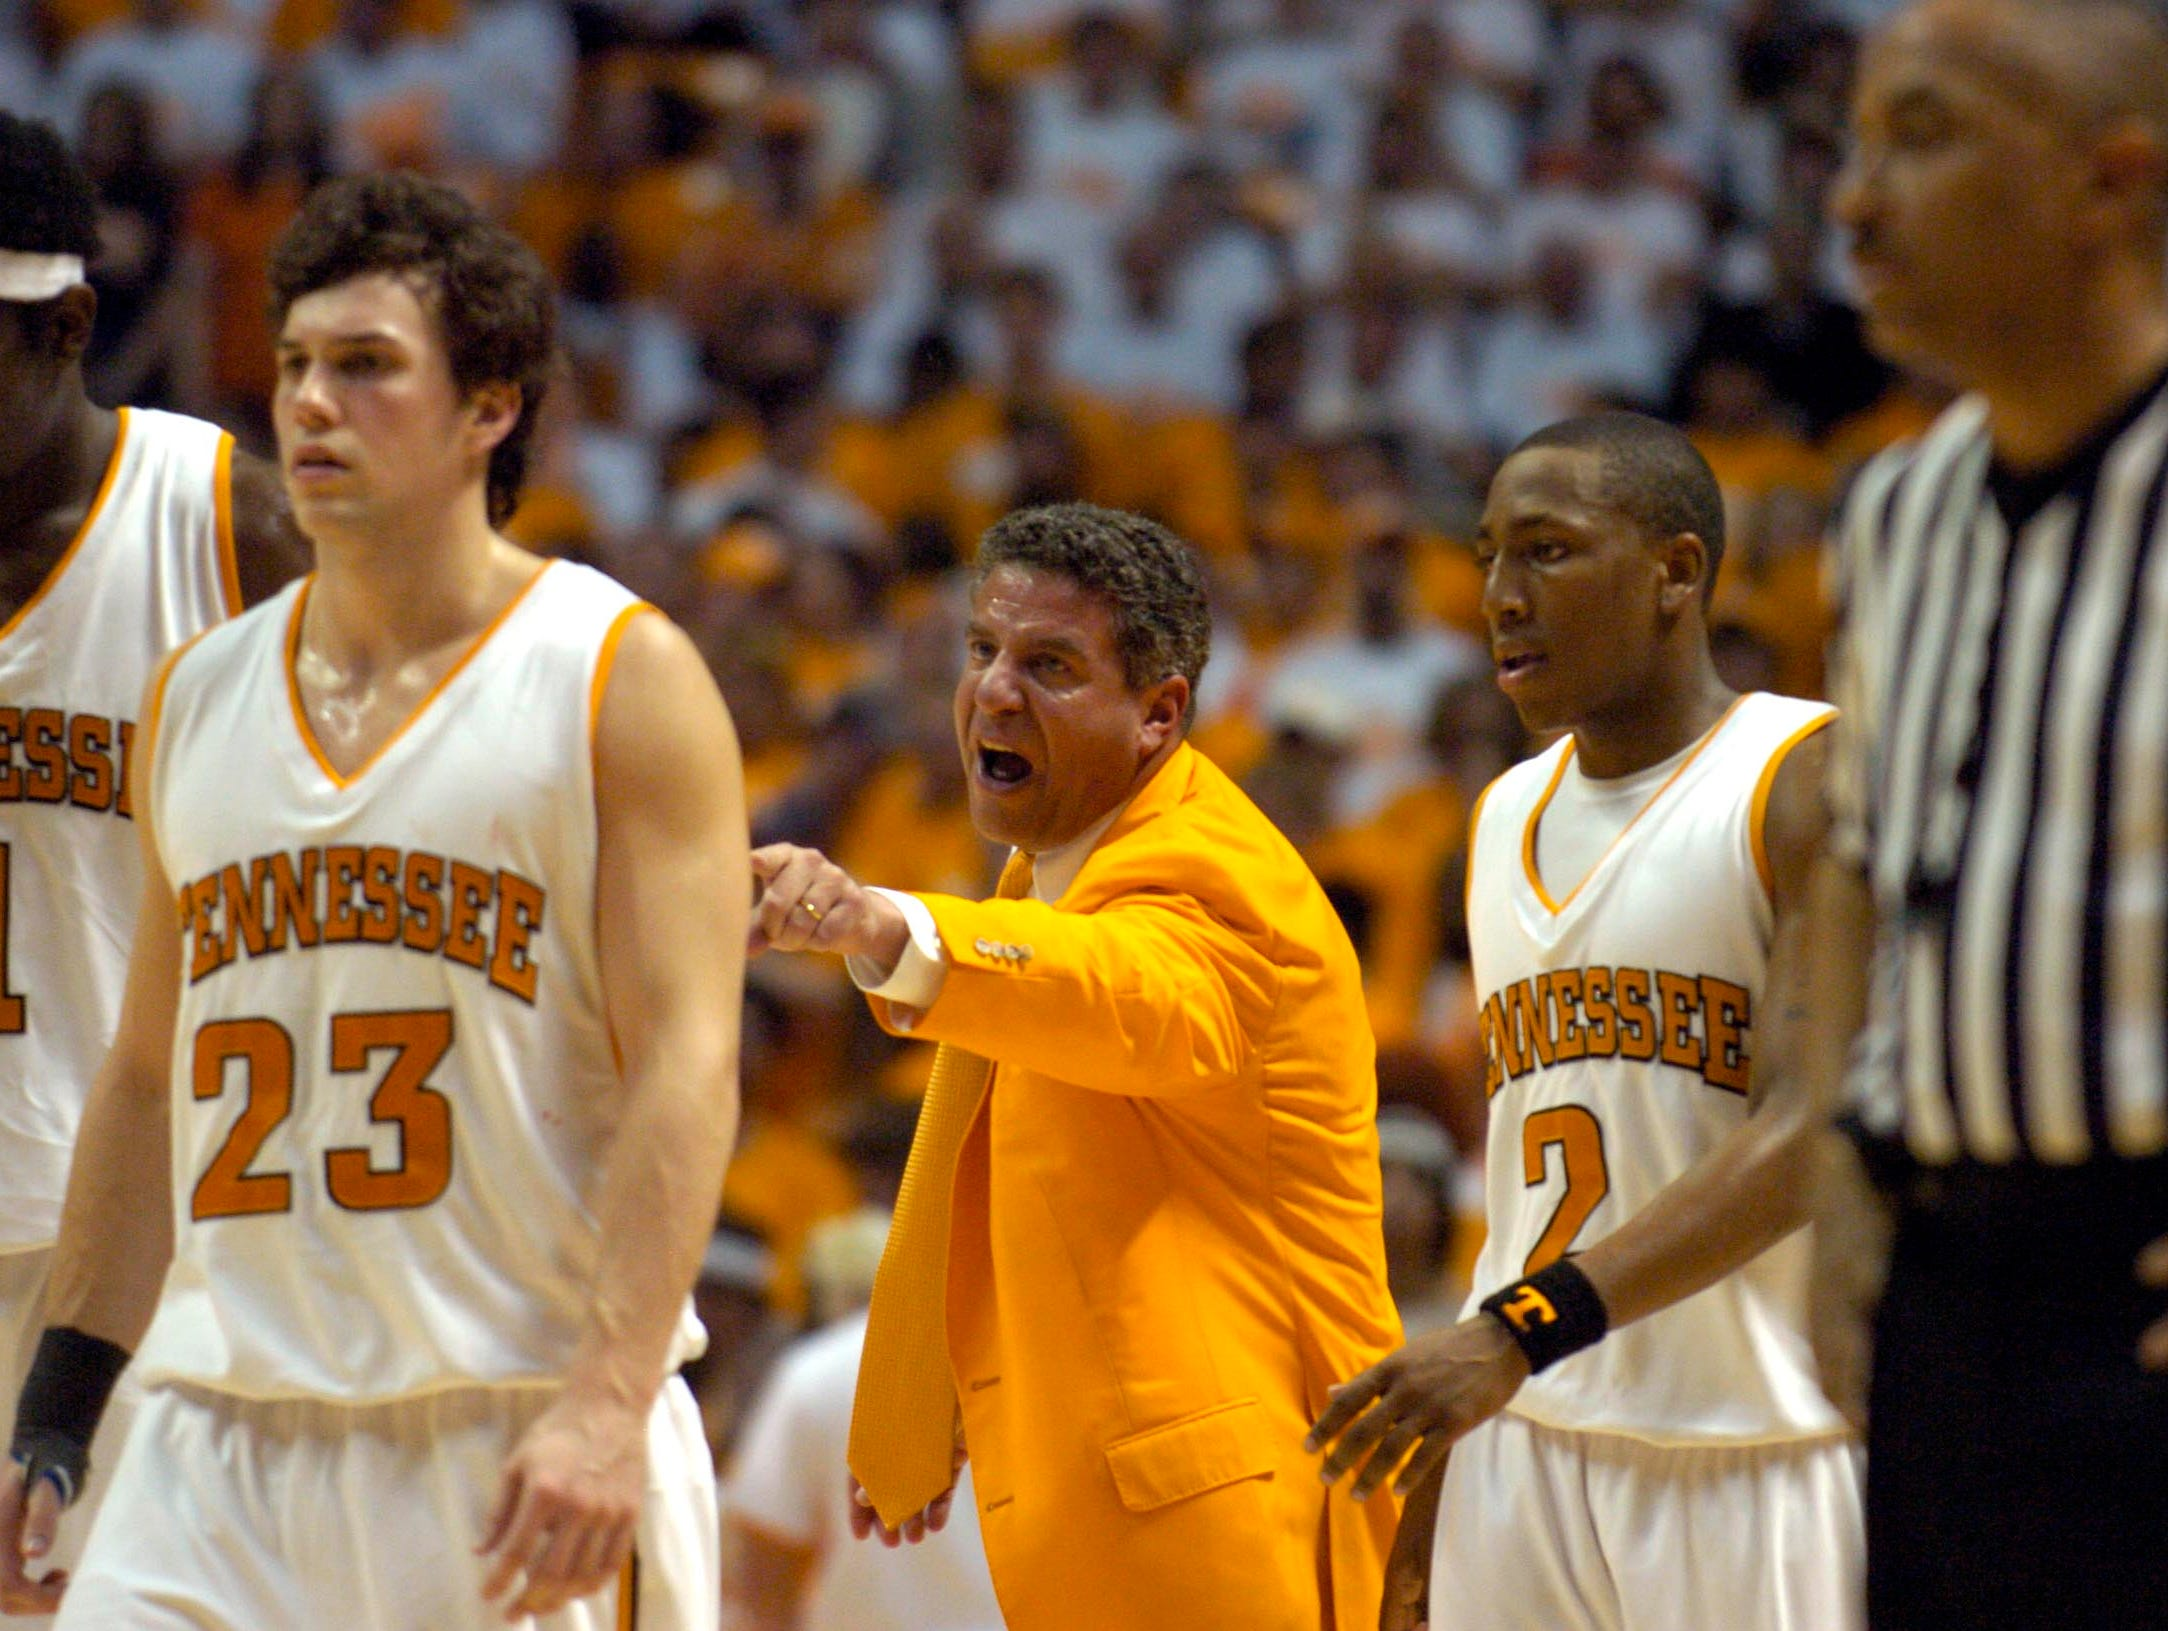 Tennessee head coach Bruce Pearl directs the players as they head back onto the court for play against Kentucky in March 2006. The Volunteers lost their second home game of the season 80-78.